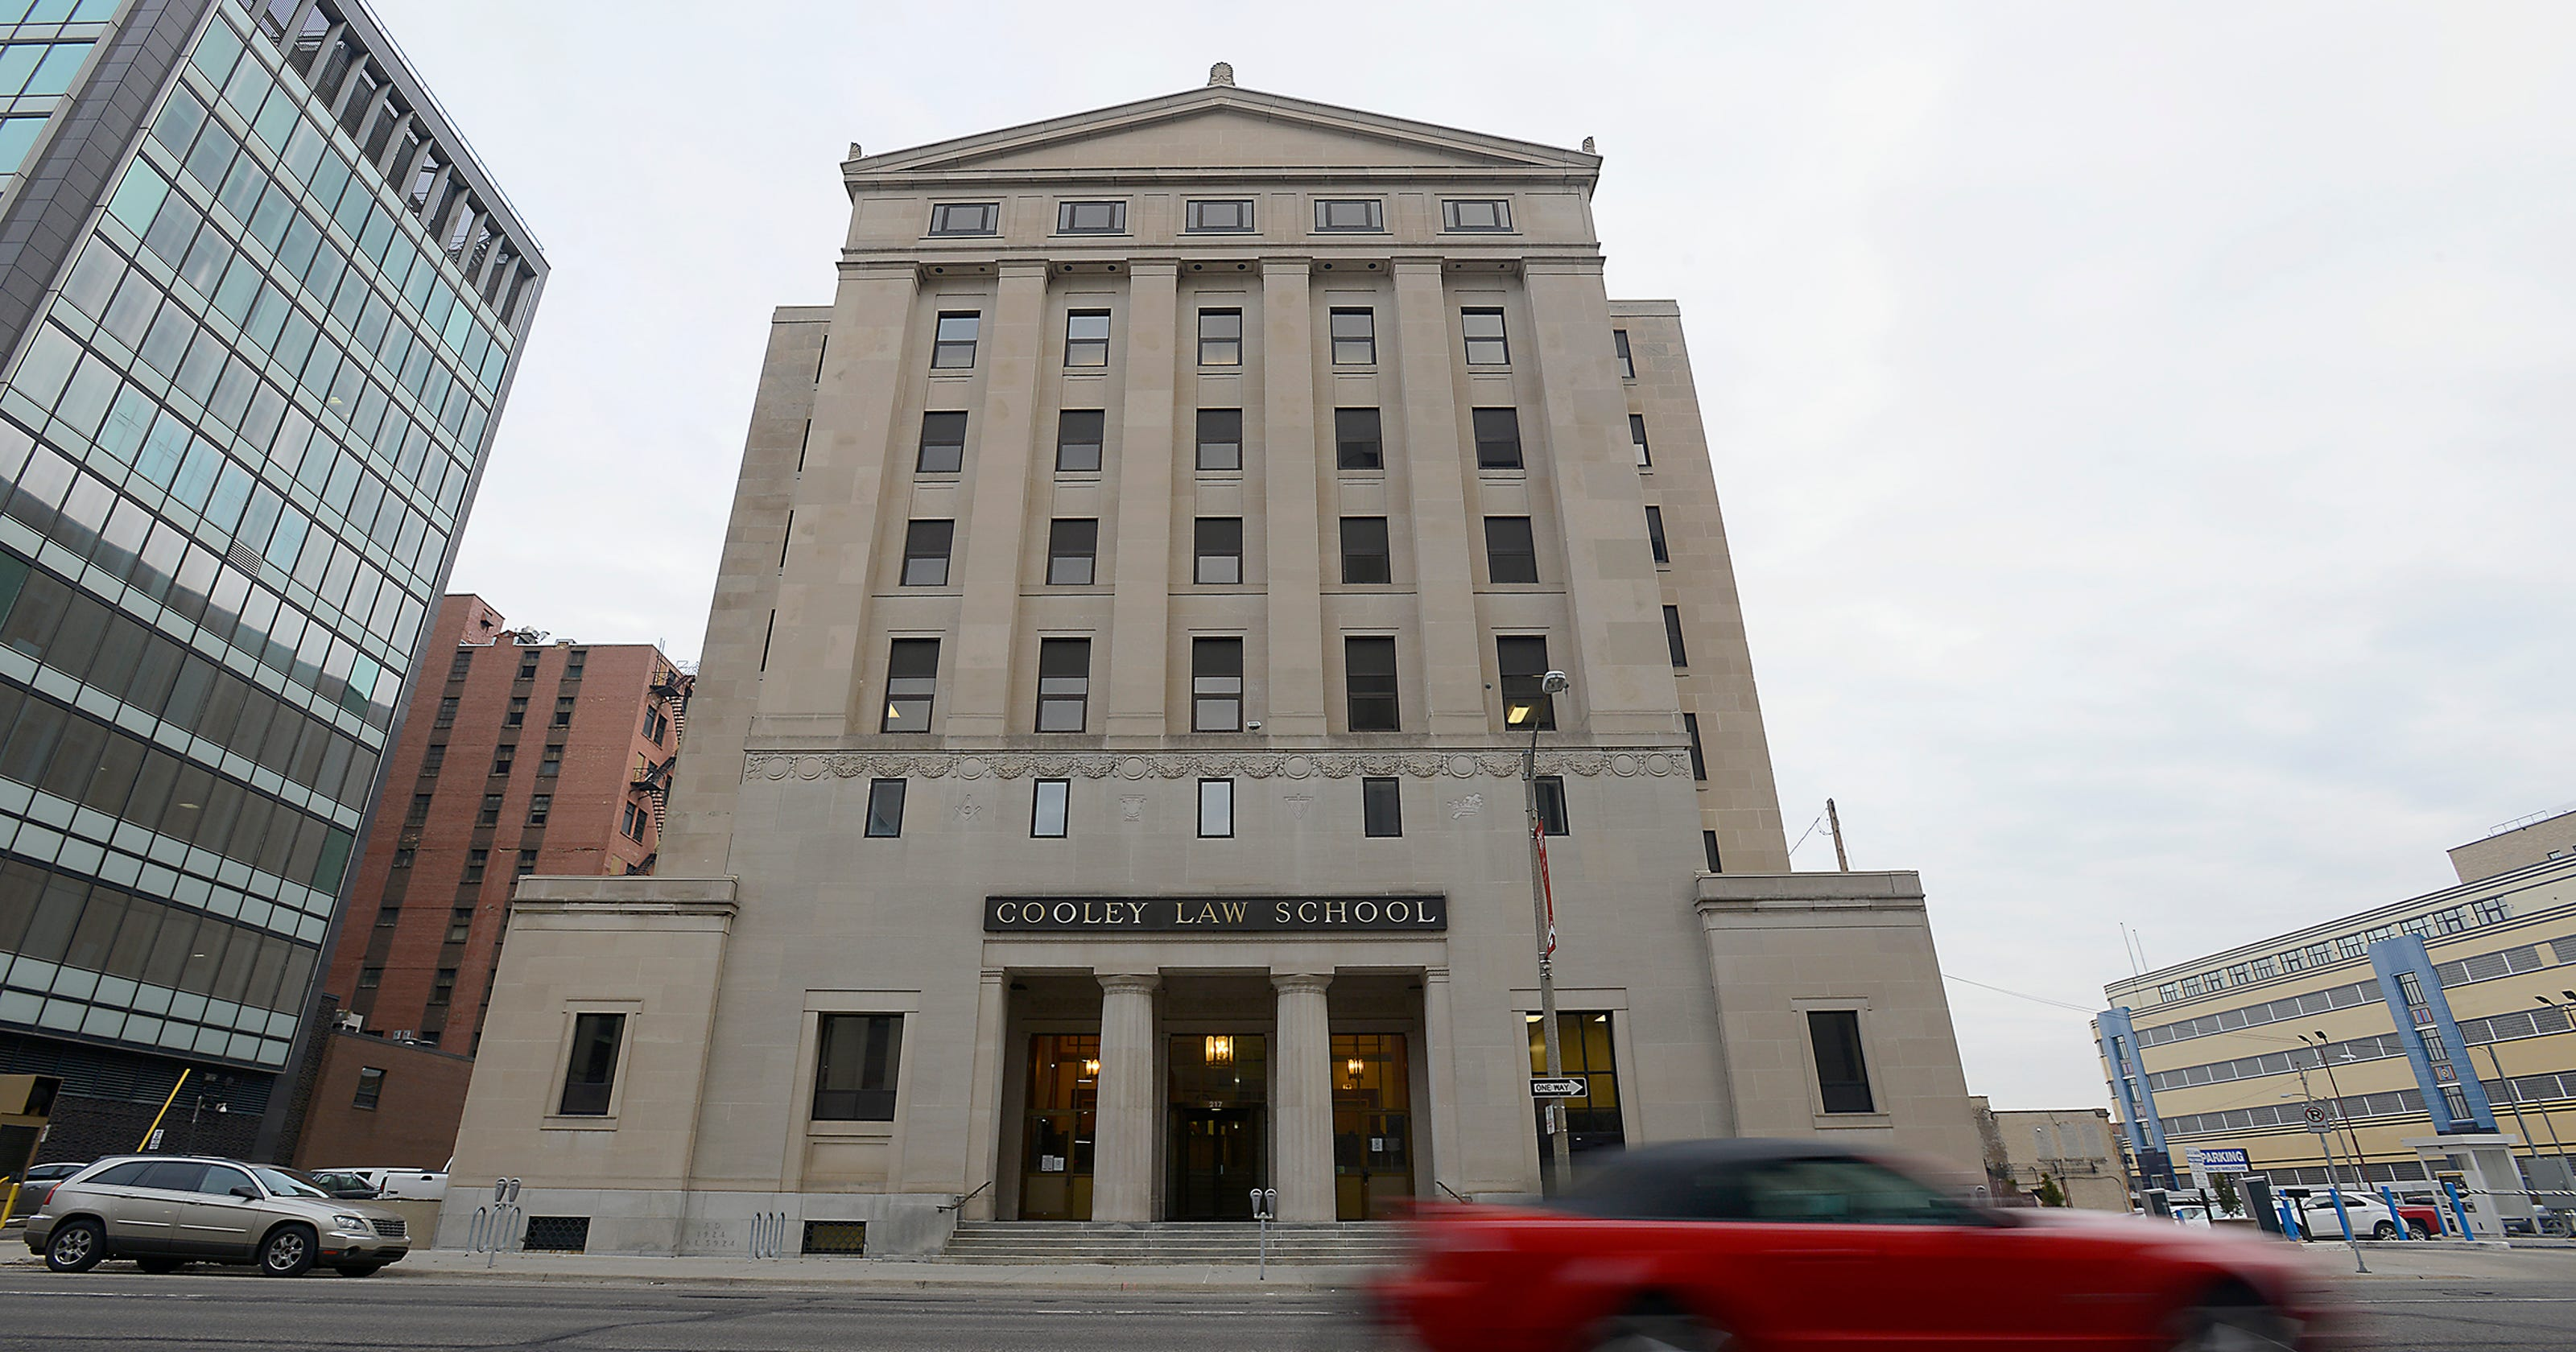 Temple Law School >> Law School Plans To Sell Former Masonic Temple Building